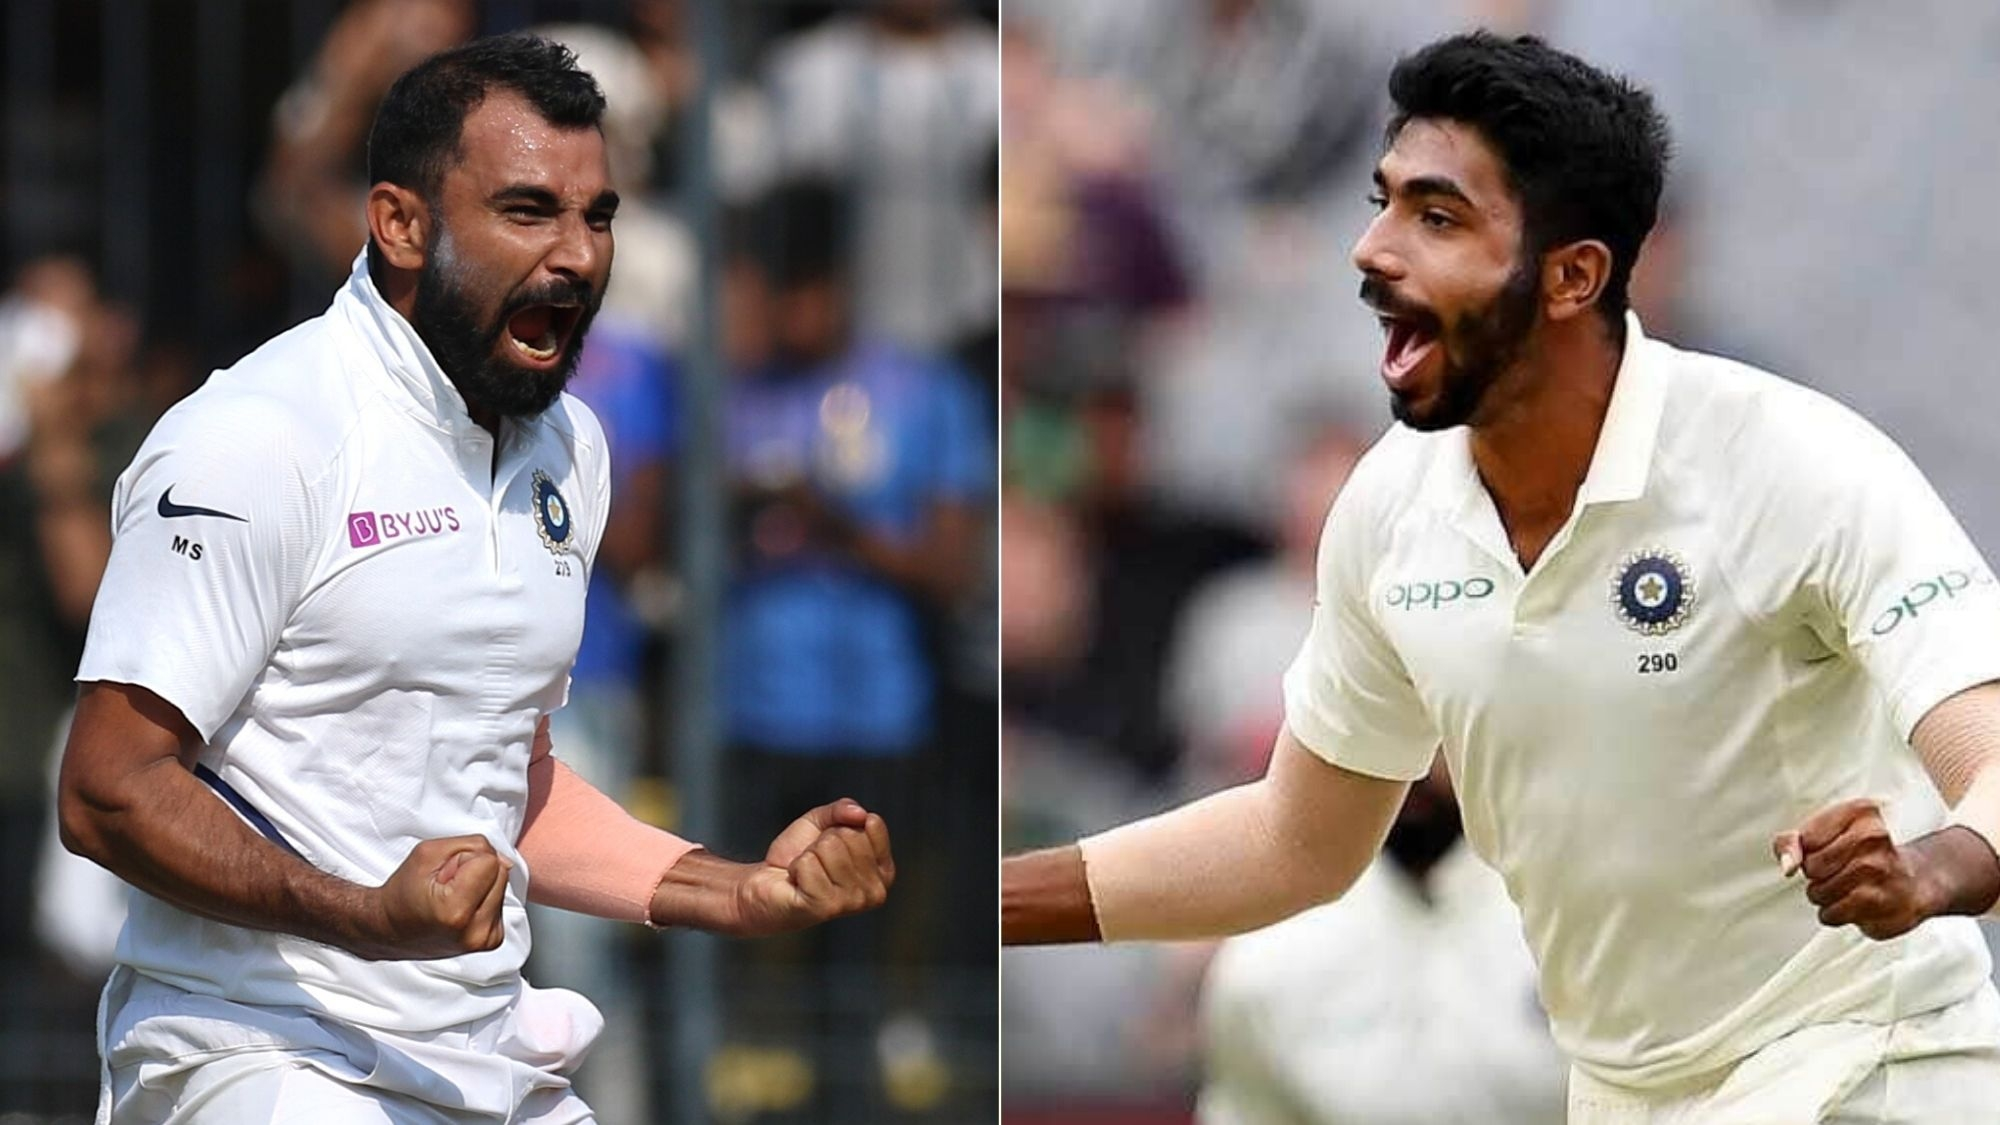 Return of Bumrah Shami, Trouble Kiwi Batsmen in the Warm Up Tie